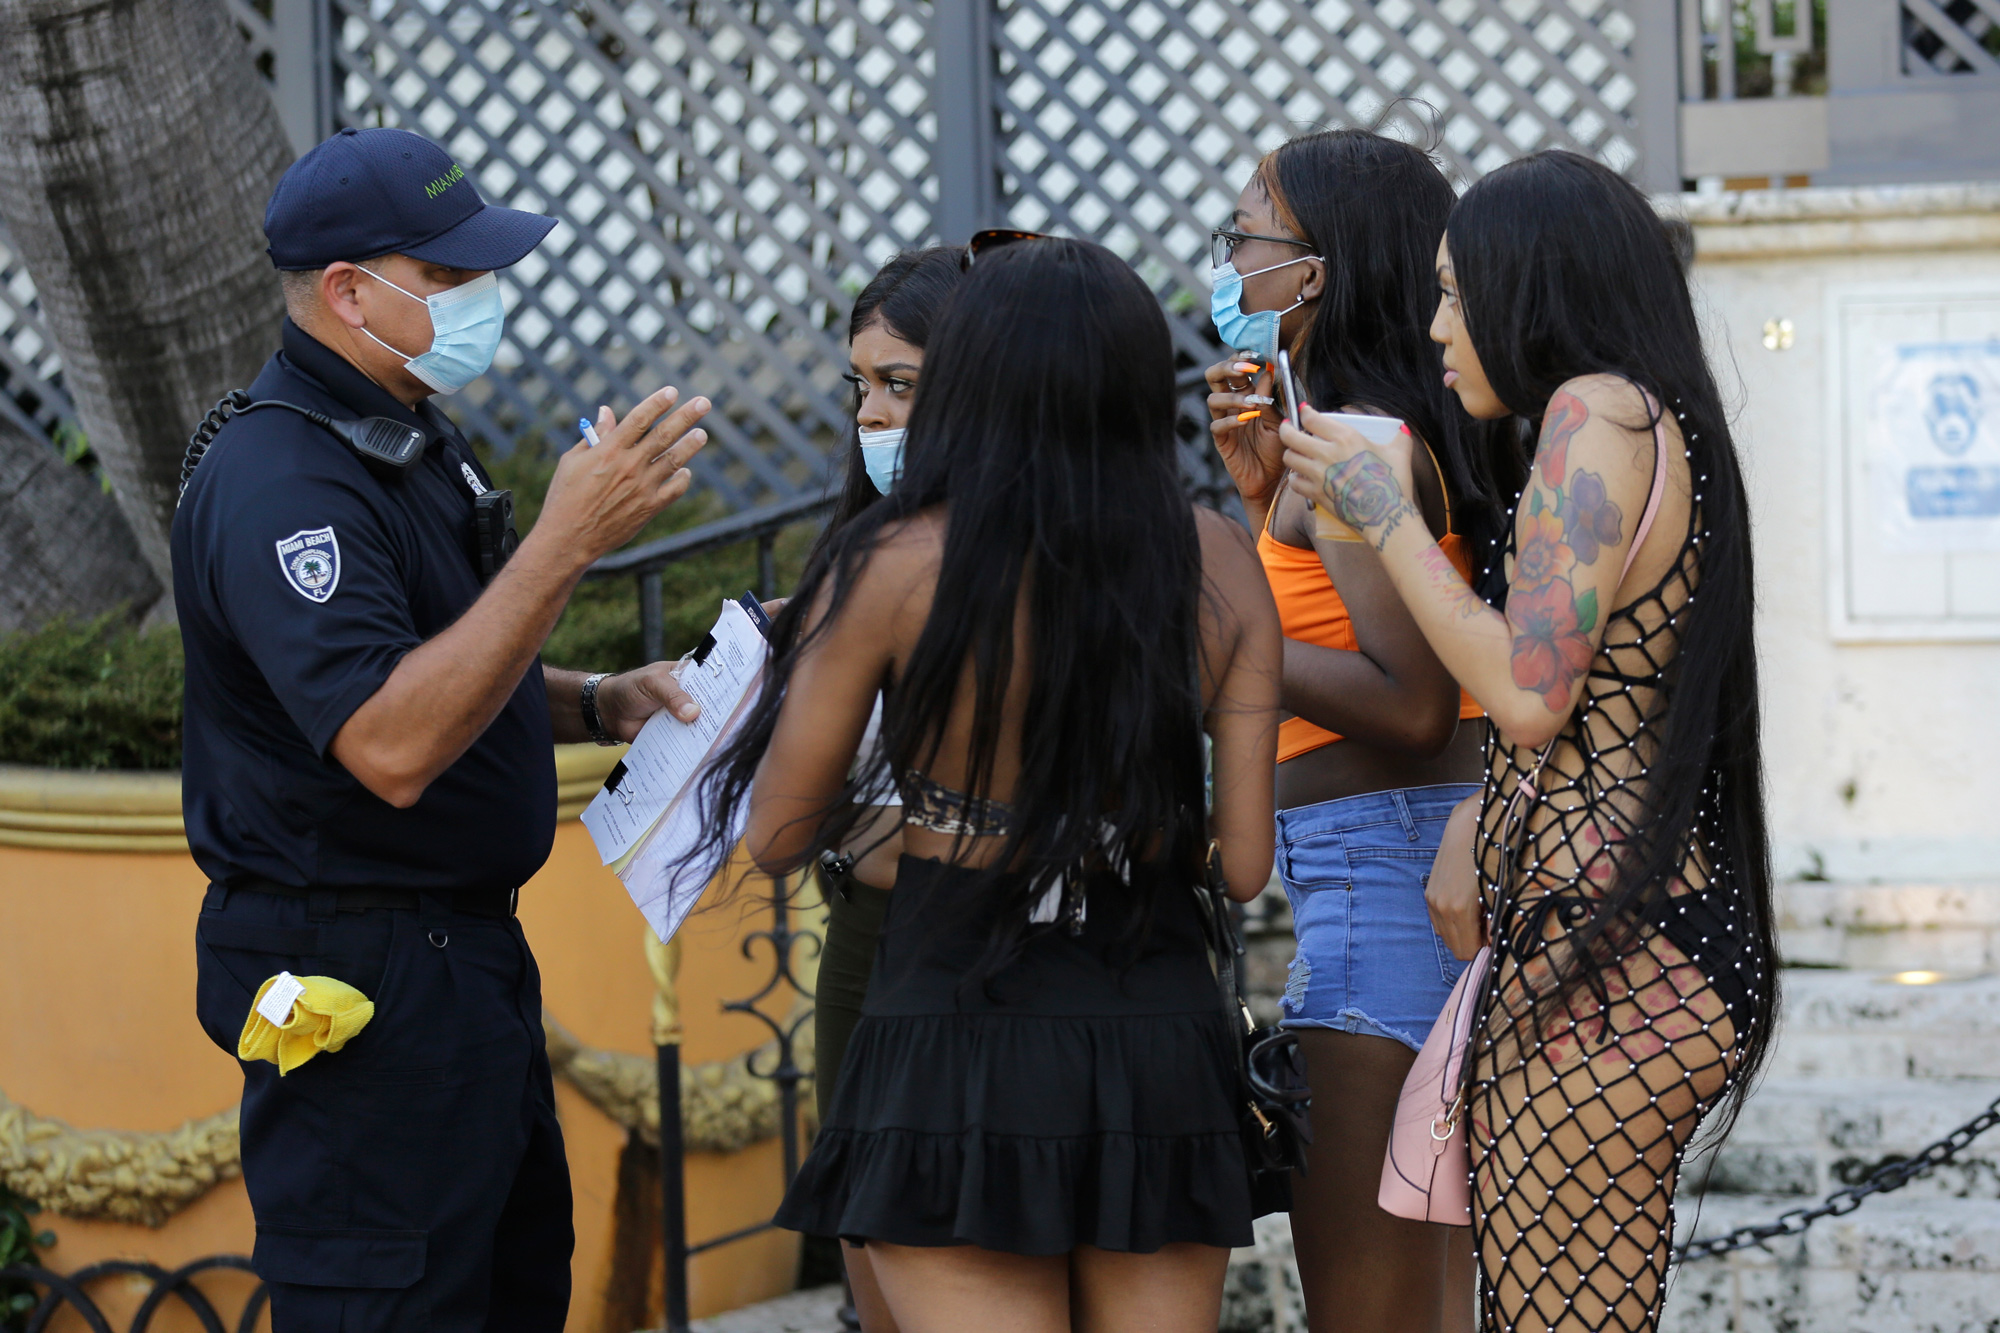 Luis Negron, a Miami Beach code compliance officer, left, talks with women along Ocean Drive about wearing a protective face mask on July 24 in Miami Beach, Florida.